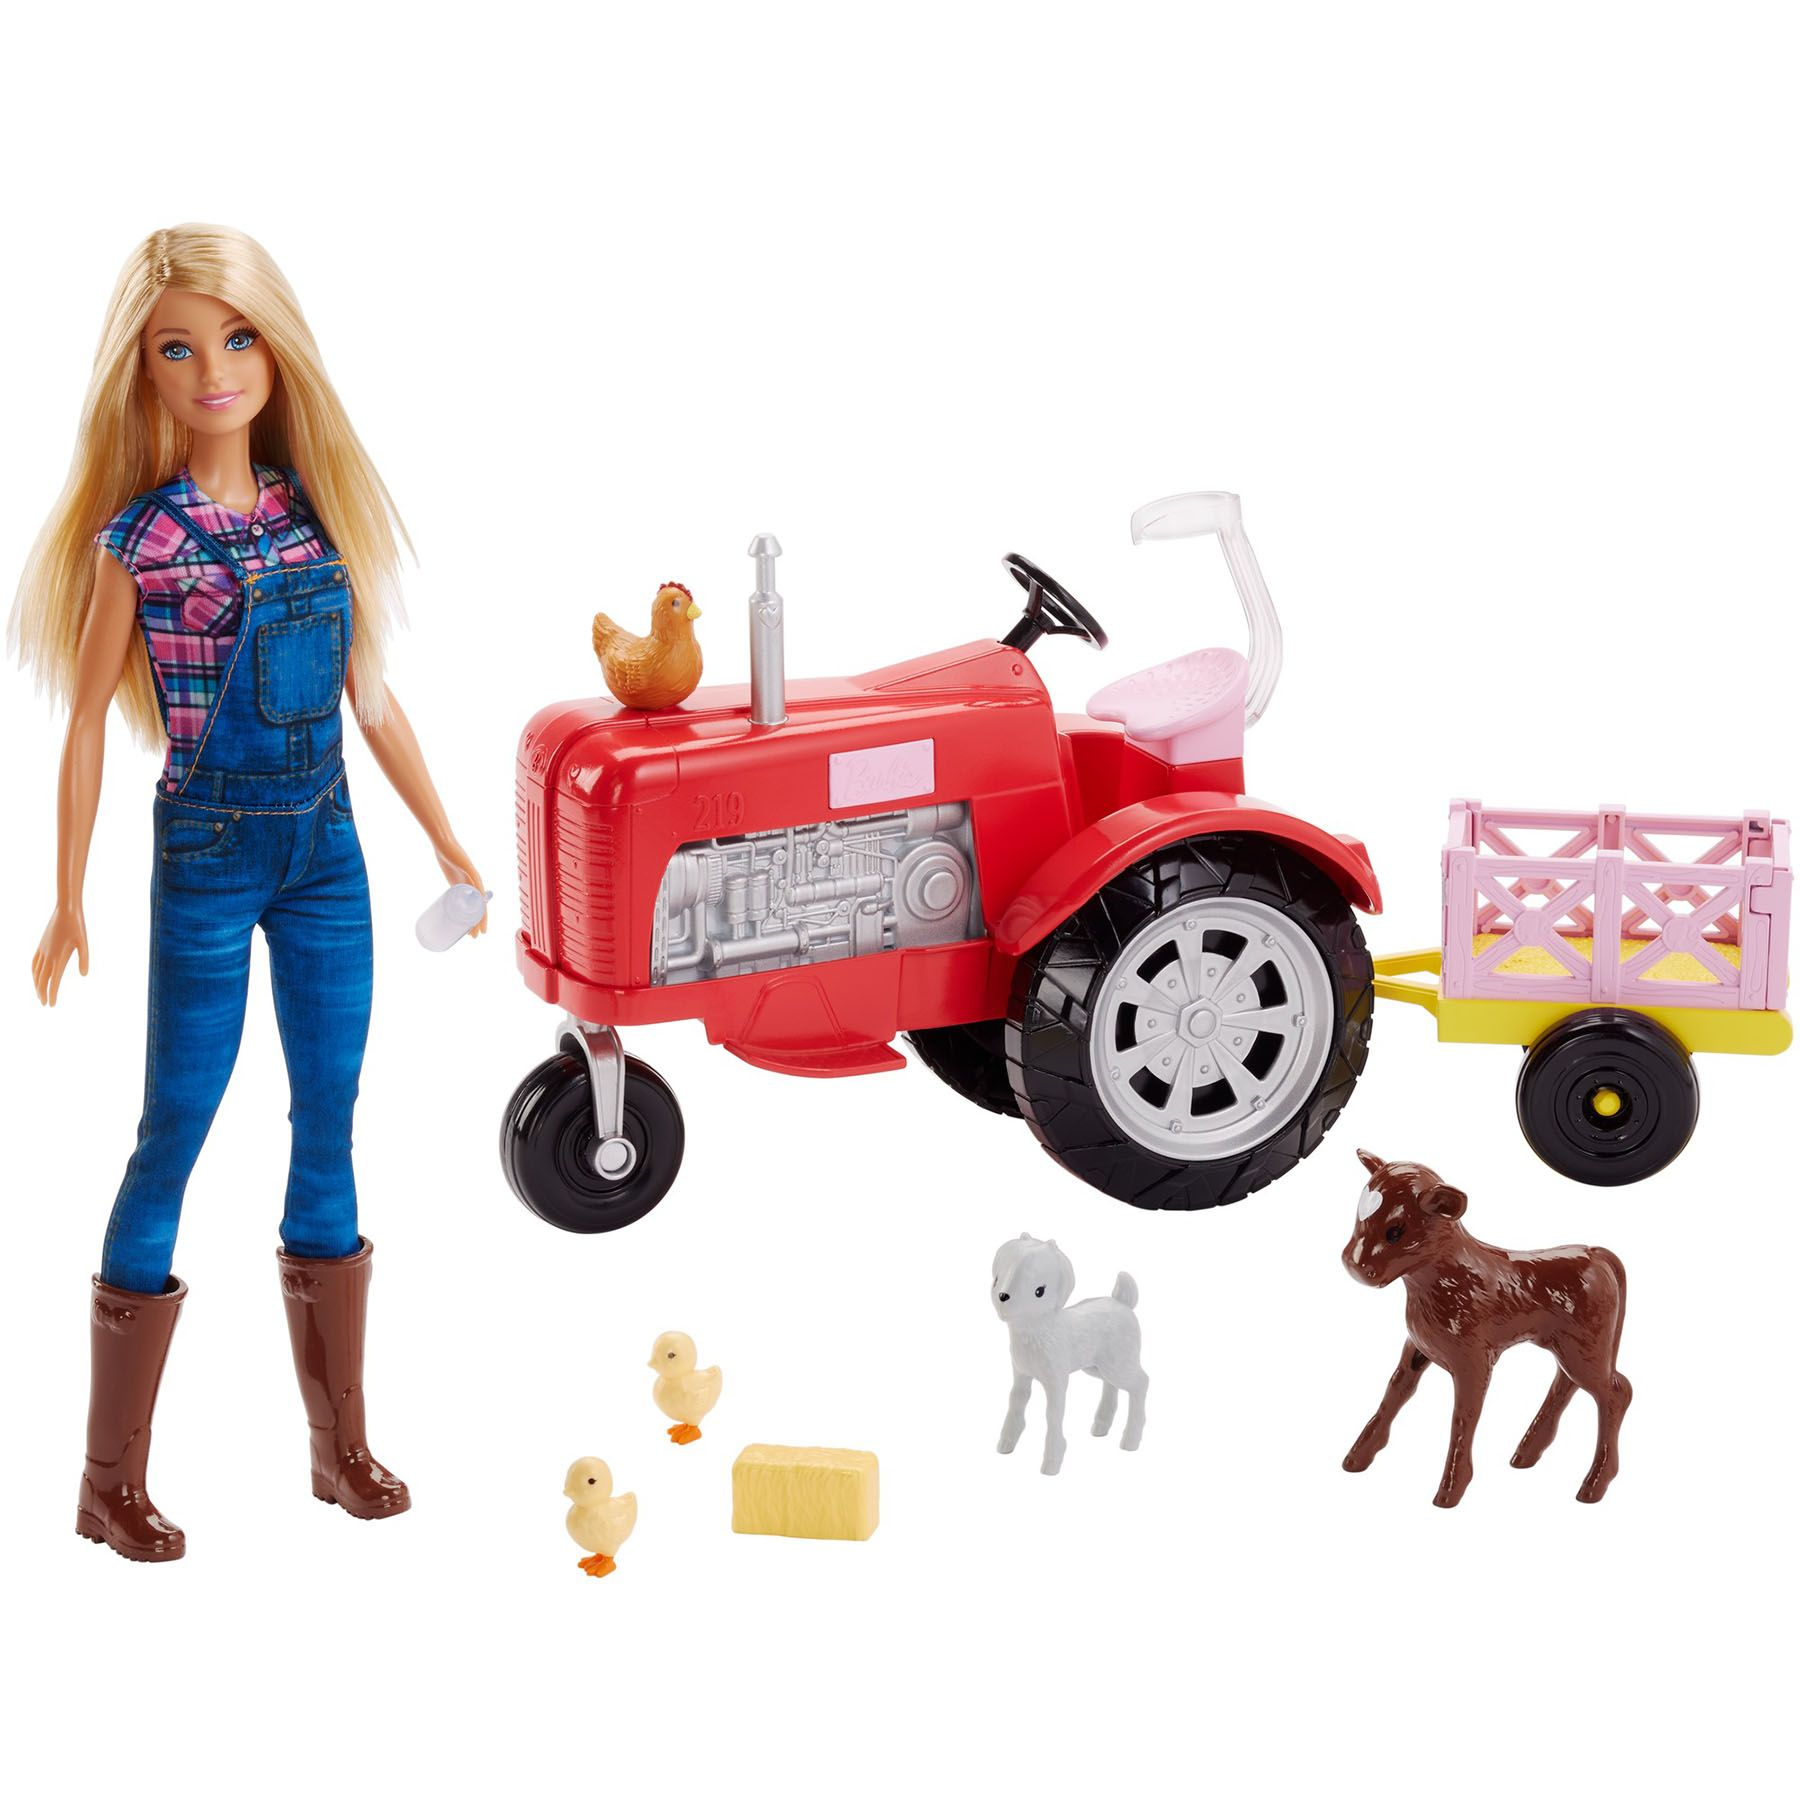 Barbie Doll and Tractor Play Set Barbie toys, Kids play